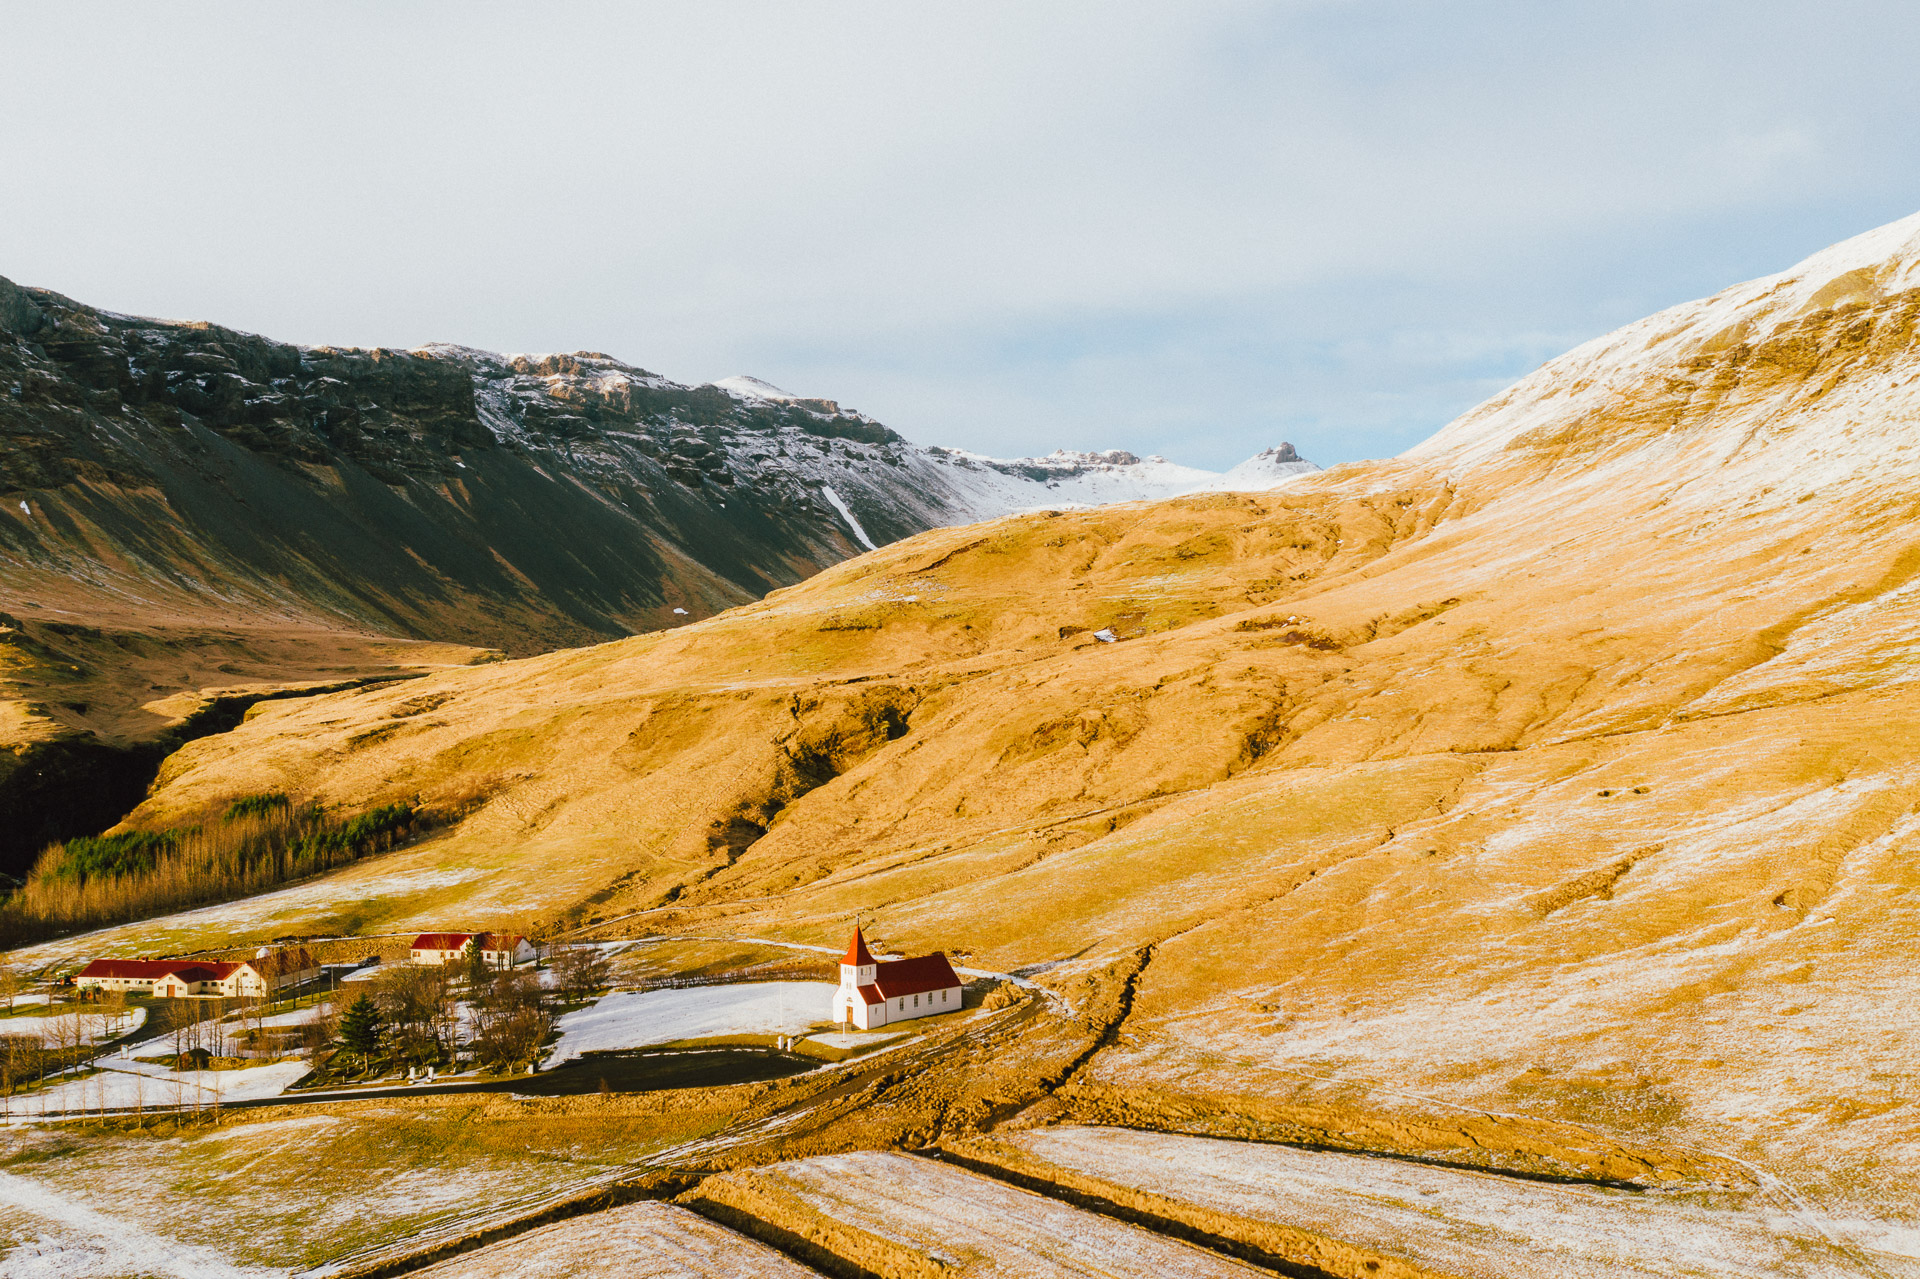 southern-iceland-travel-photography-editorial-tanveer-badal-38.jpg